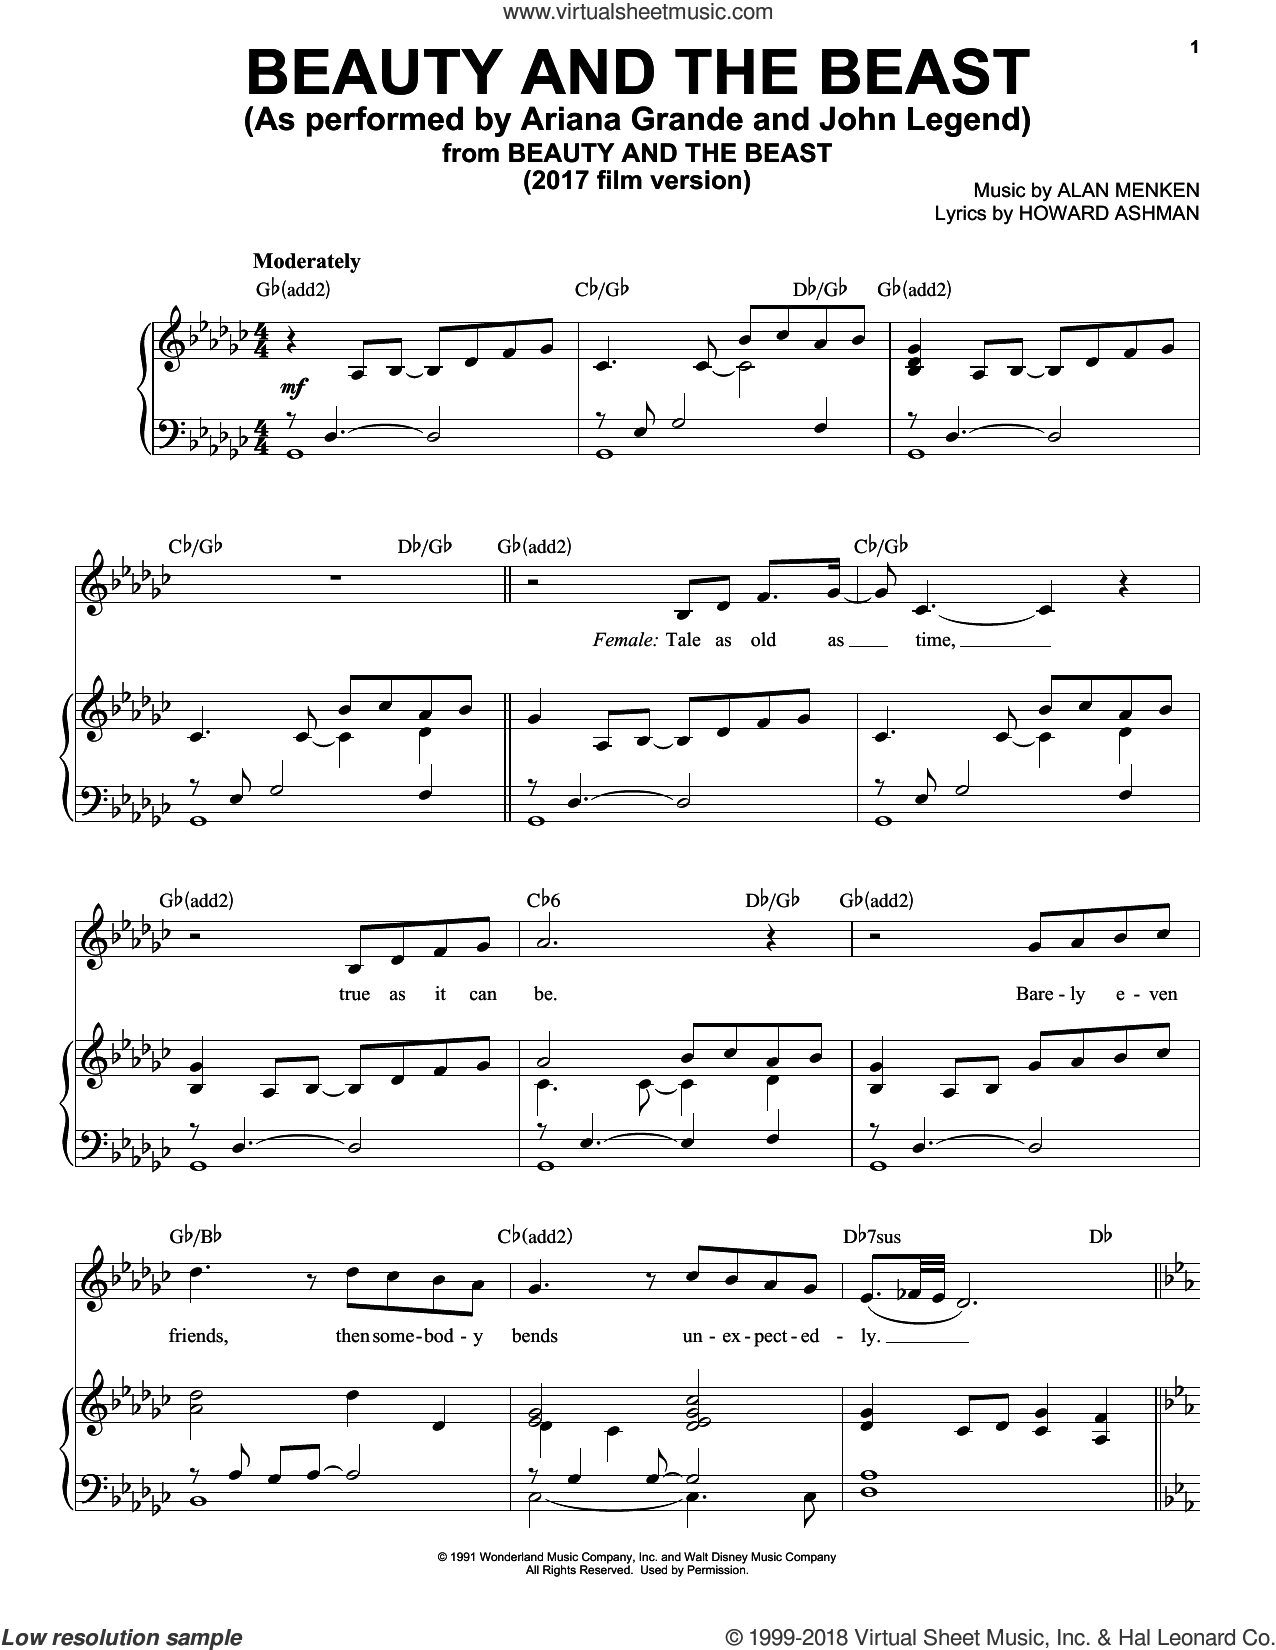 Beauty And The Beast sheet music for voice, piano or guitar by Ariana Grande & John Legend, Emma Thompson, Alan Menken and Howard Ashman, intermediate skill level